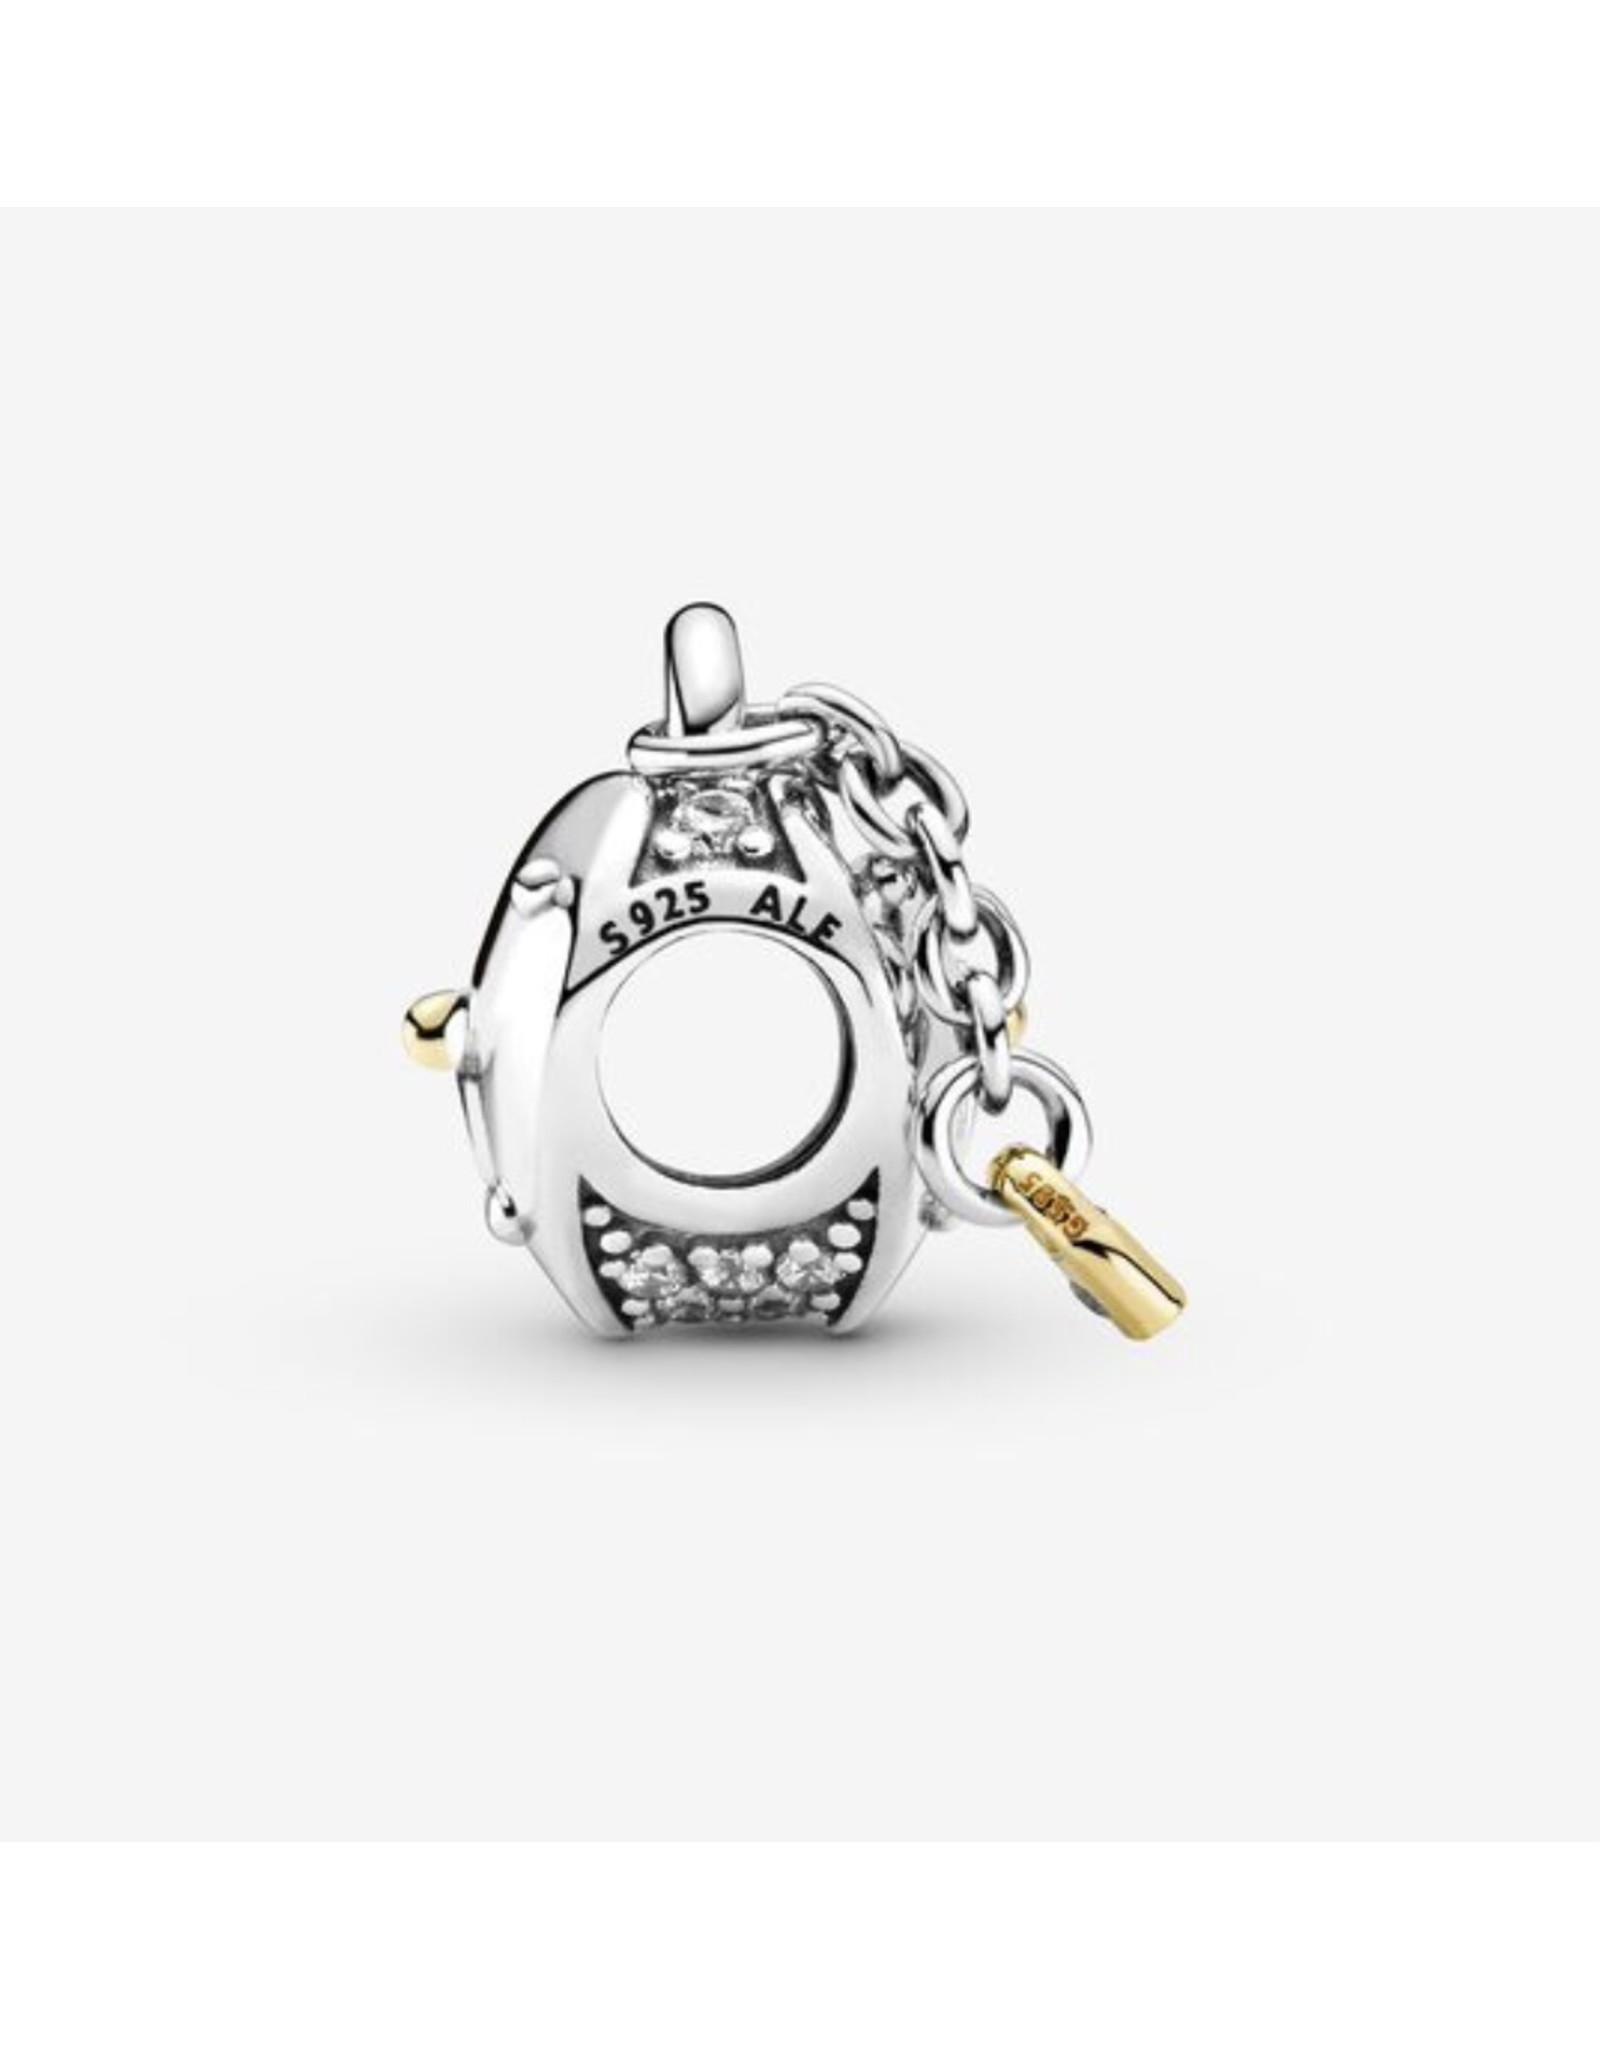 Pandora Pandora Charm,799160C01,Heart & Lock With 14K Gold